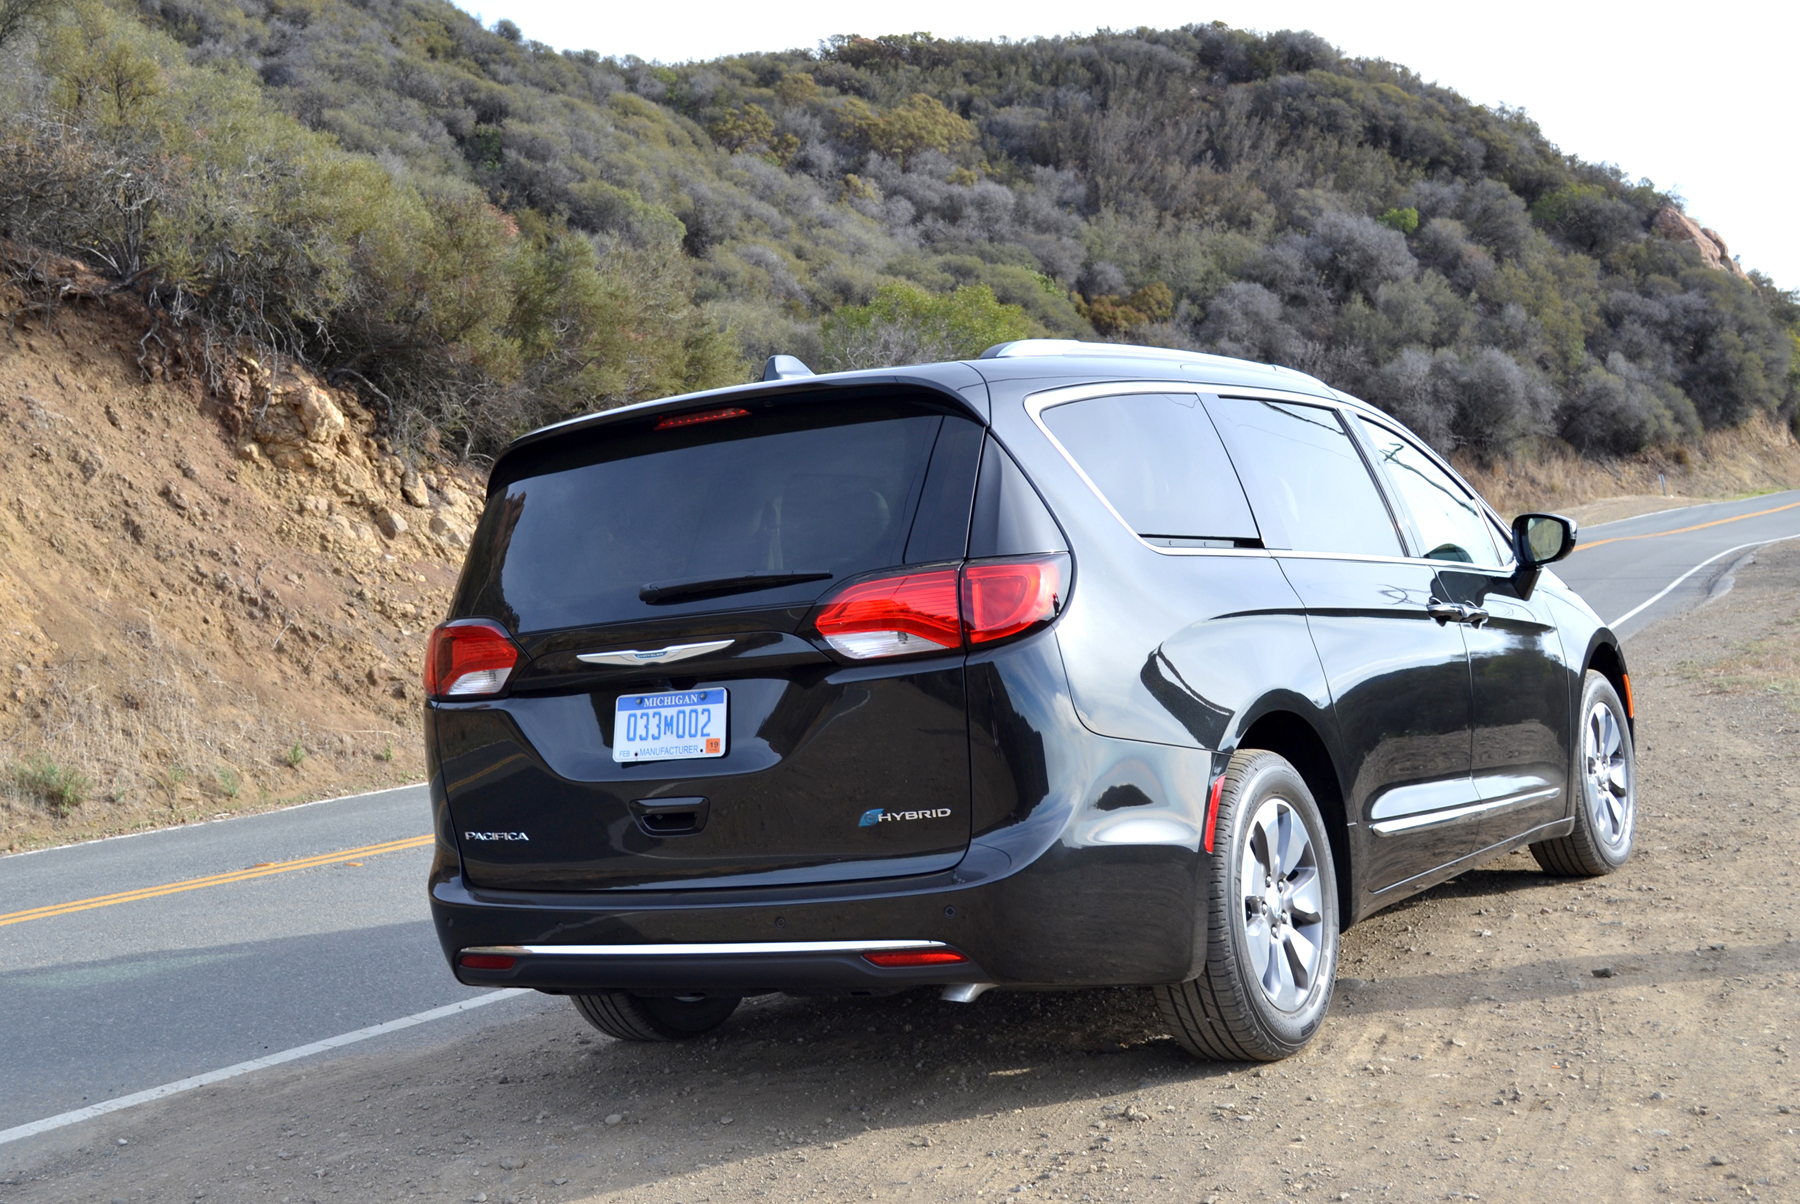 ca low with lift way game by to car van rear fca large a dominated space wheels changer hybrid chrysler full is litres over liftgate opening reviews the cargo pacifica of